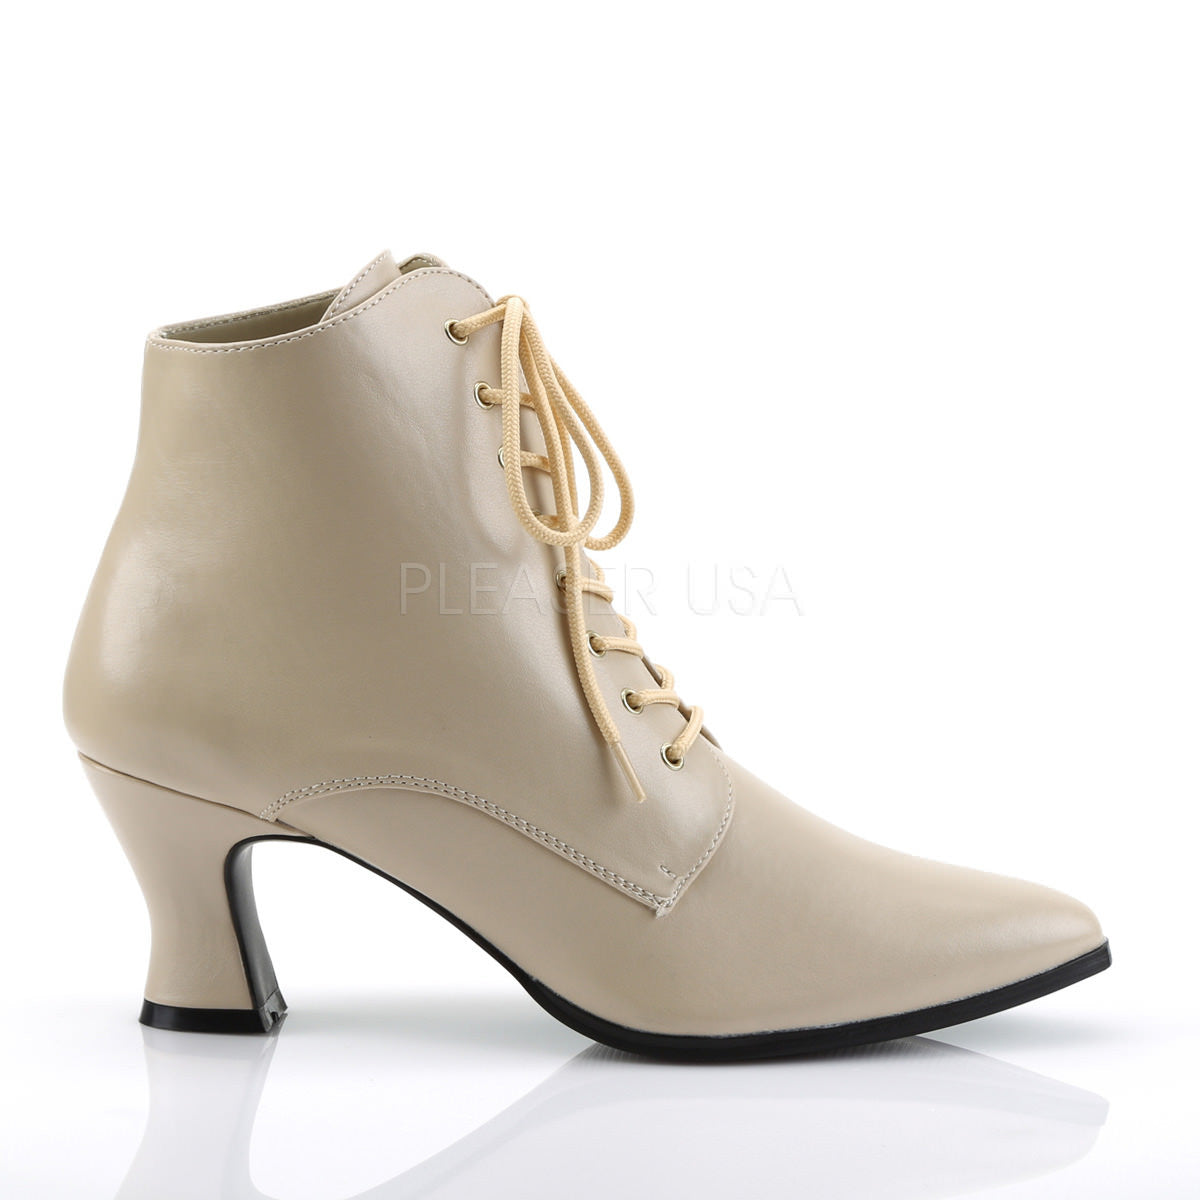 Funtasma VICTORIAN-35 Women/'s Brown Pu Kitten Low Heel Front Lace Up Ankle Boots